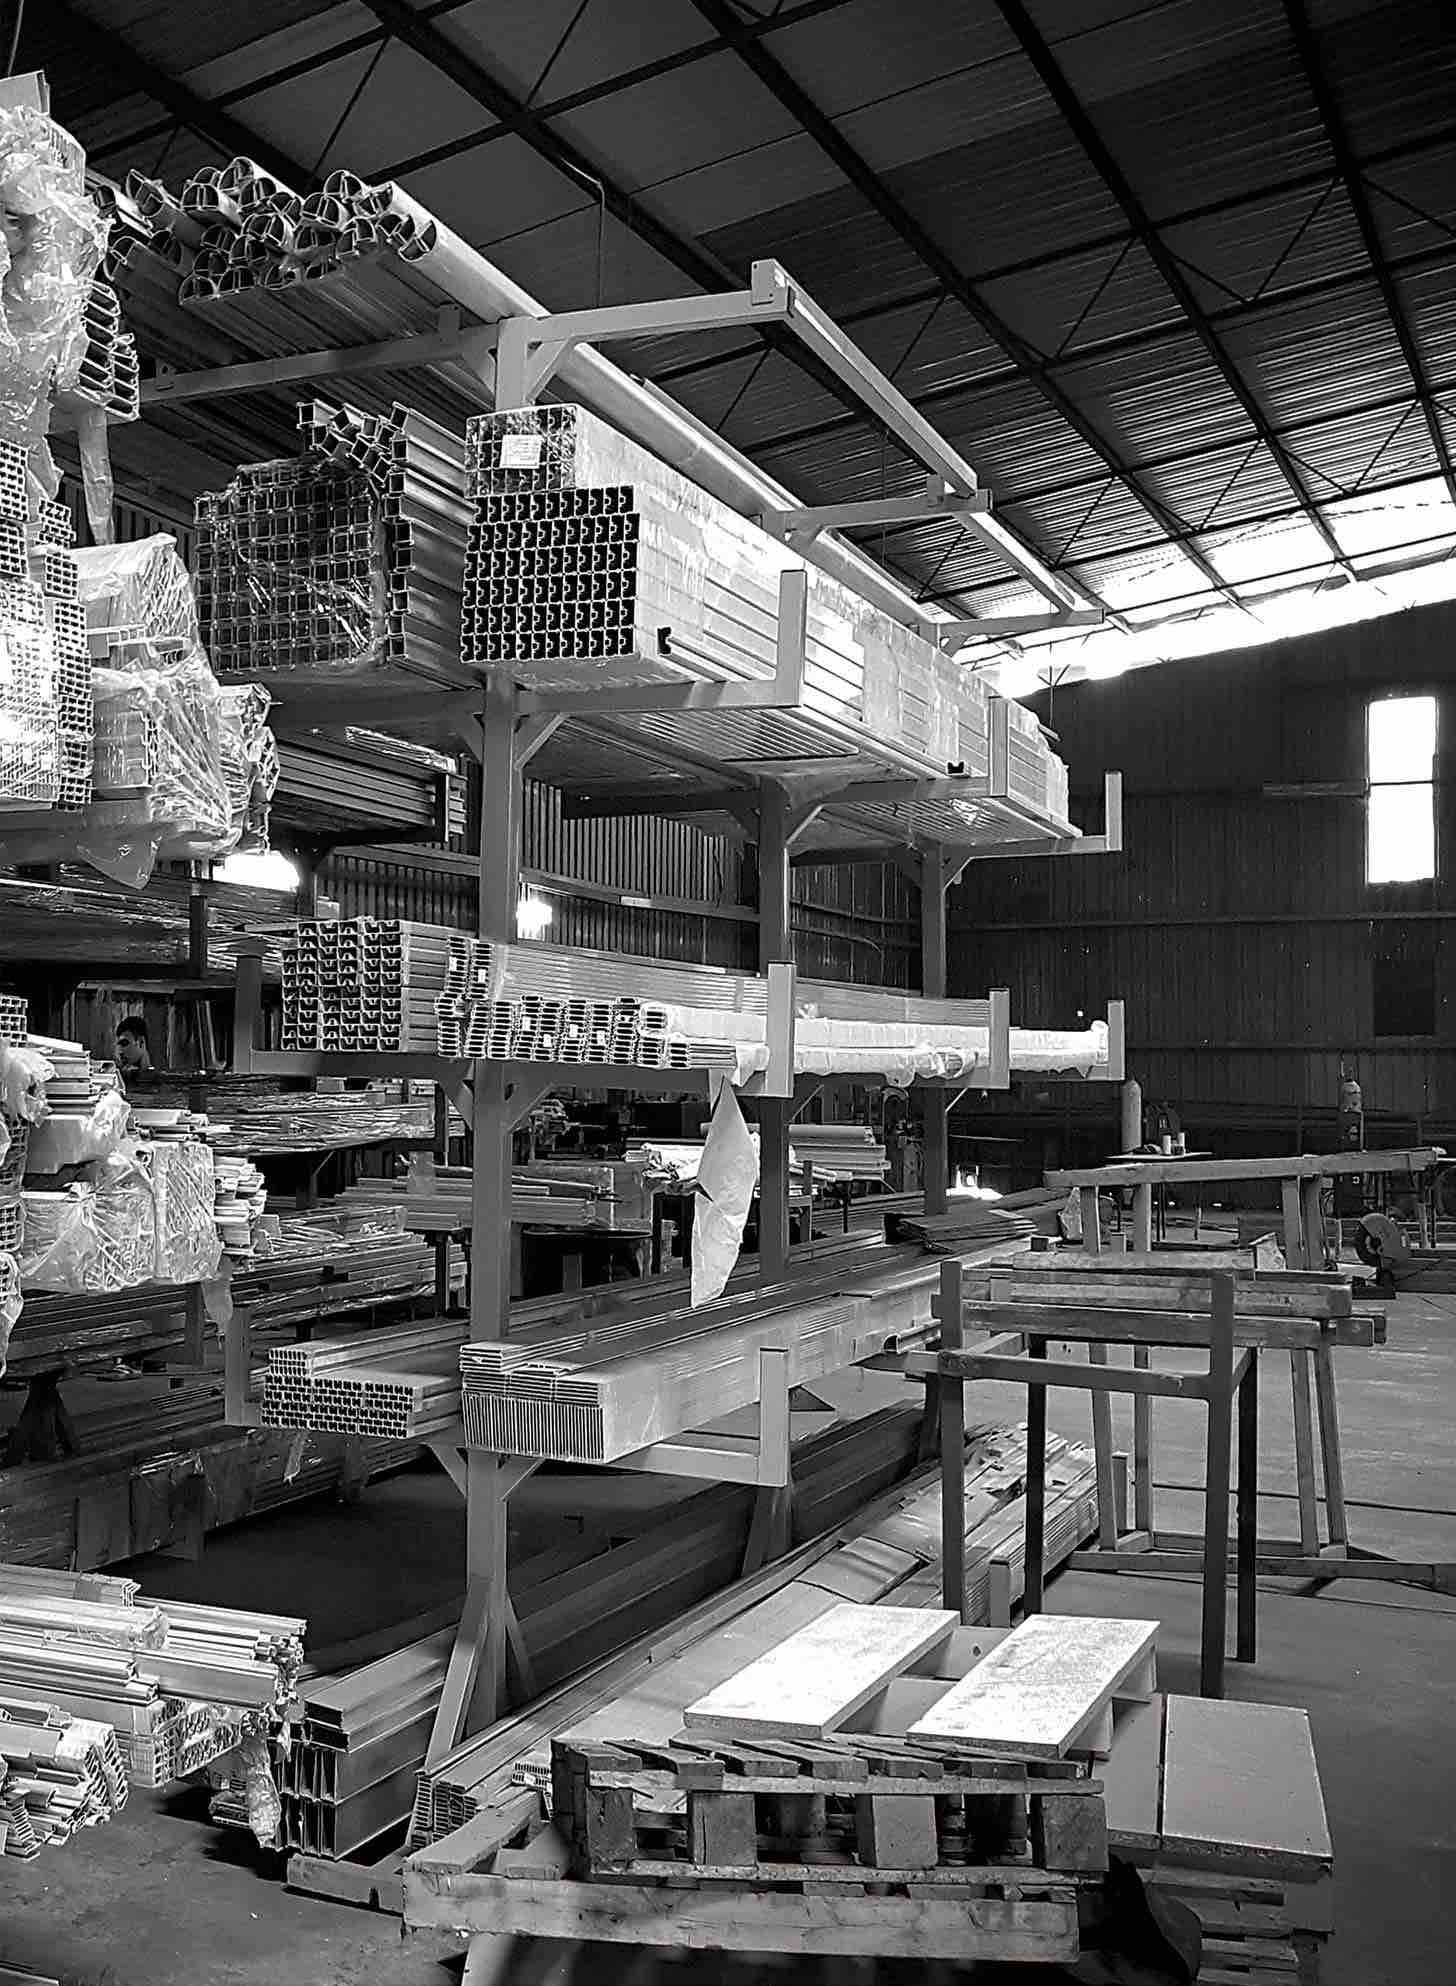 LenZon Office Furniture Manufacturing Warehouse